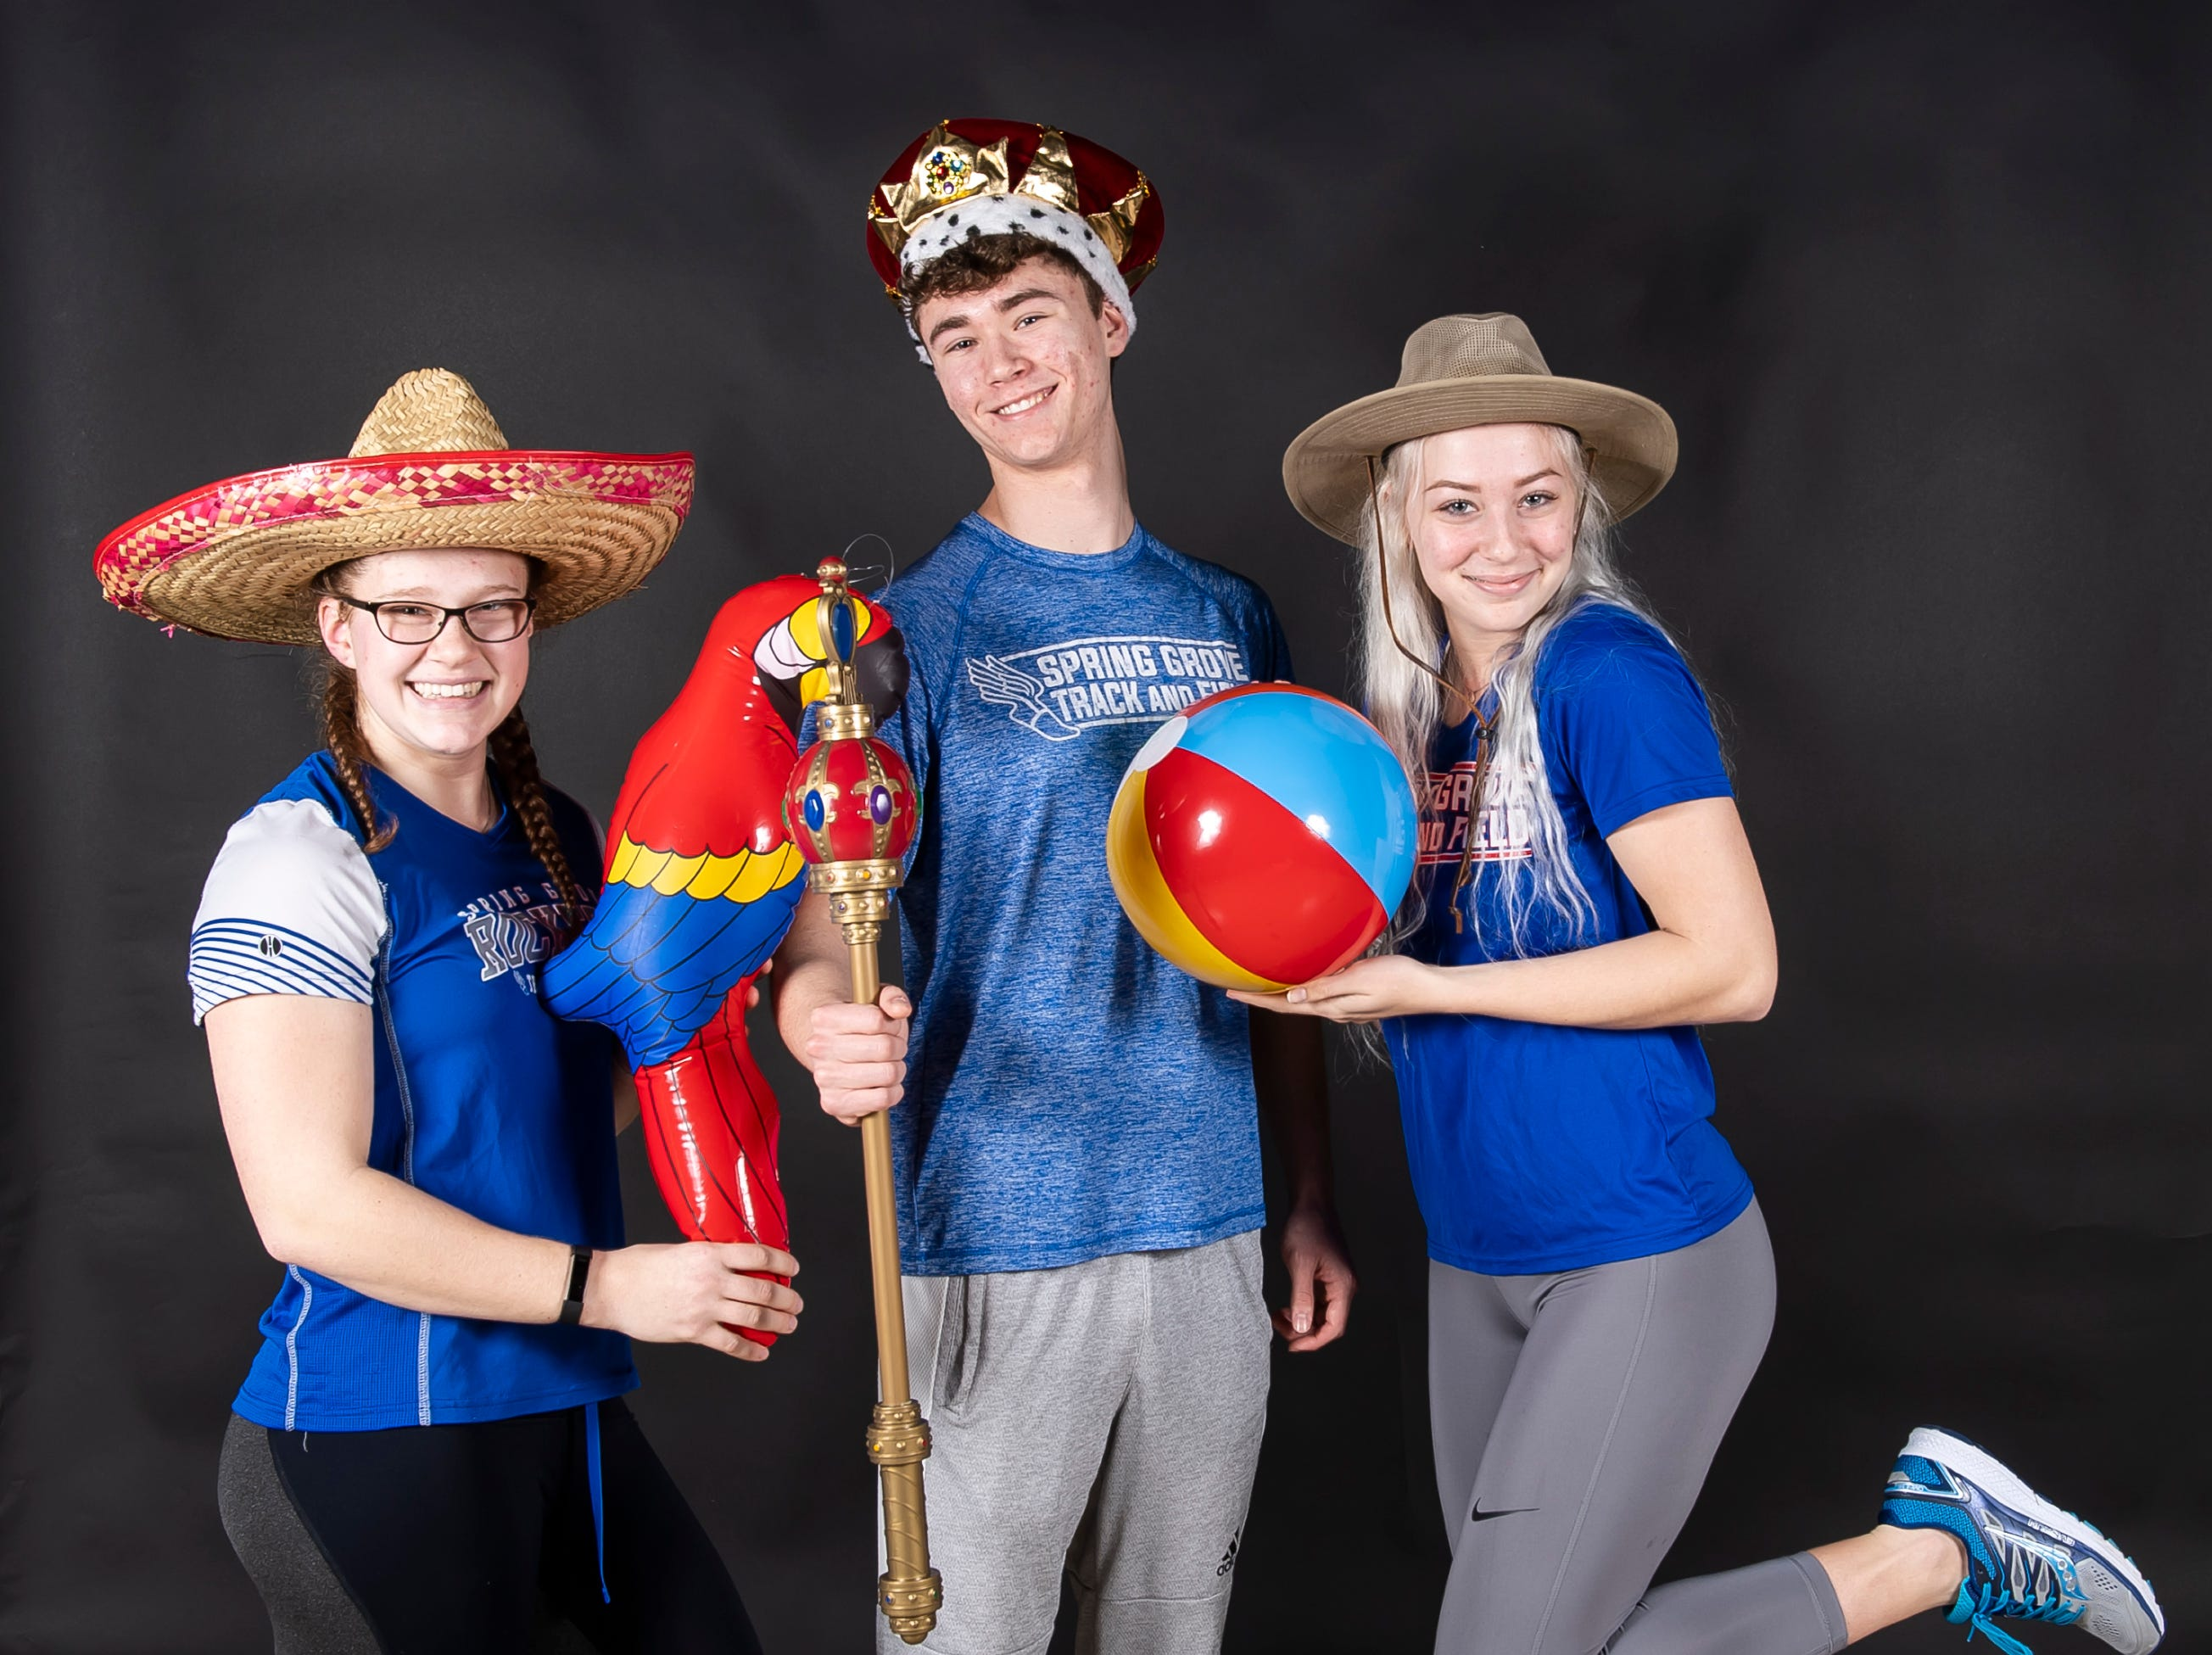 (From left) Spring Grove track and field athletes Ashley Dressler, Colson Martin and Angel Rohrbaugh strike a pose in the GameTimePA photo booth during spring sports media day in York Sunday, March 10, 2019.